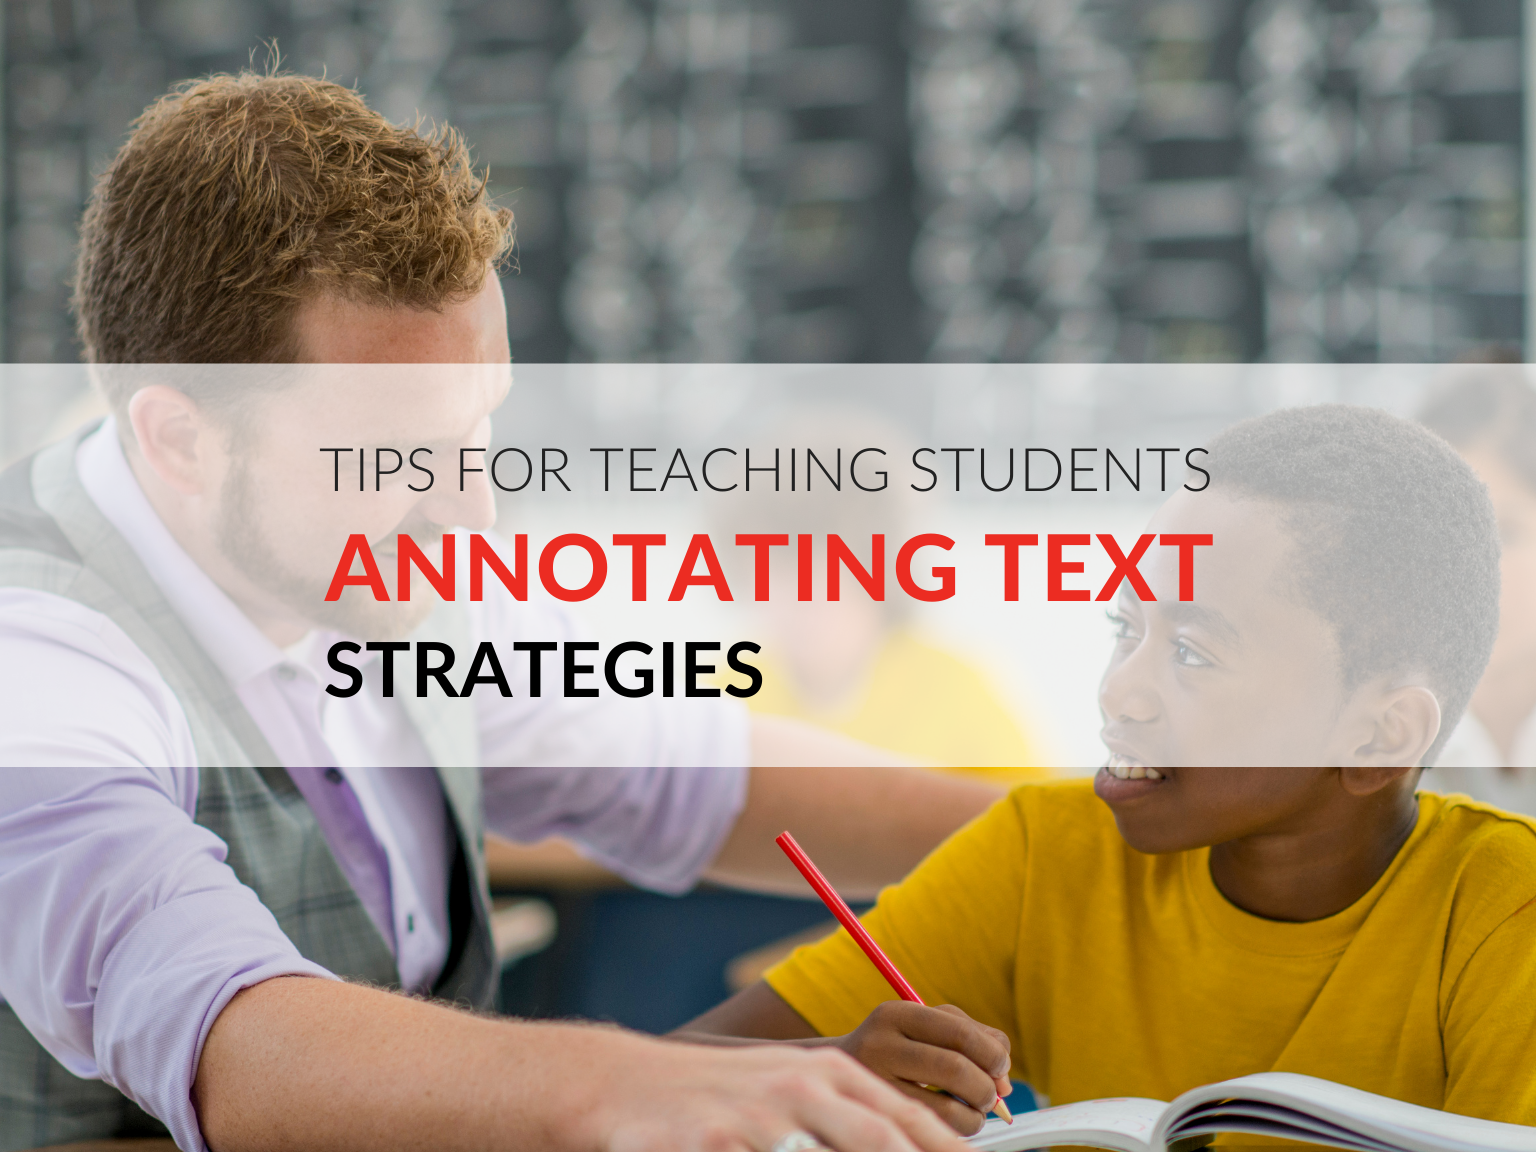 One of the most important skills I teach my students as we begin to work on close reading is how to annotate texts. Teaching annotation strategies will help students keep track of key ideas